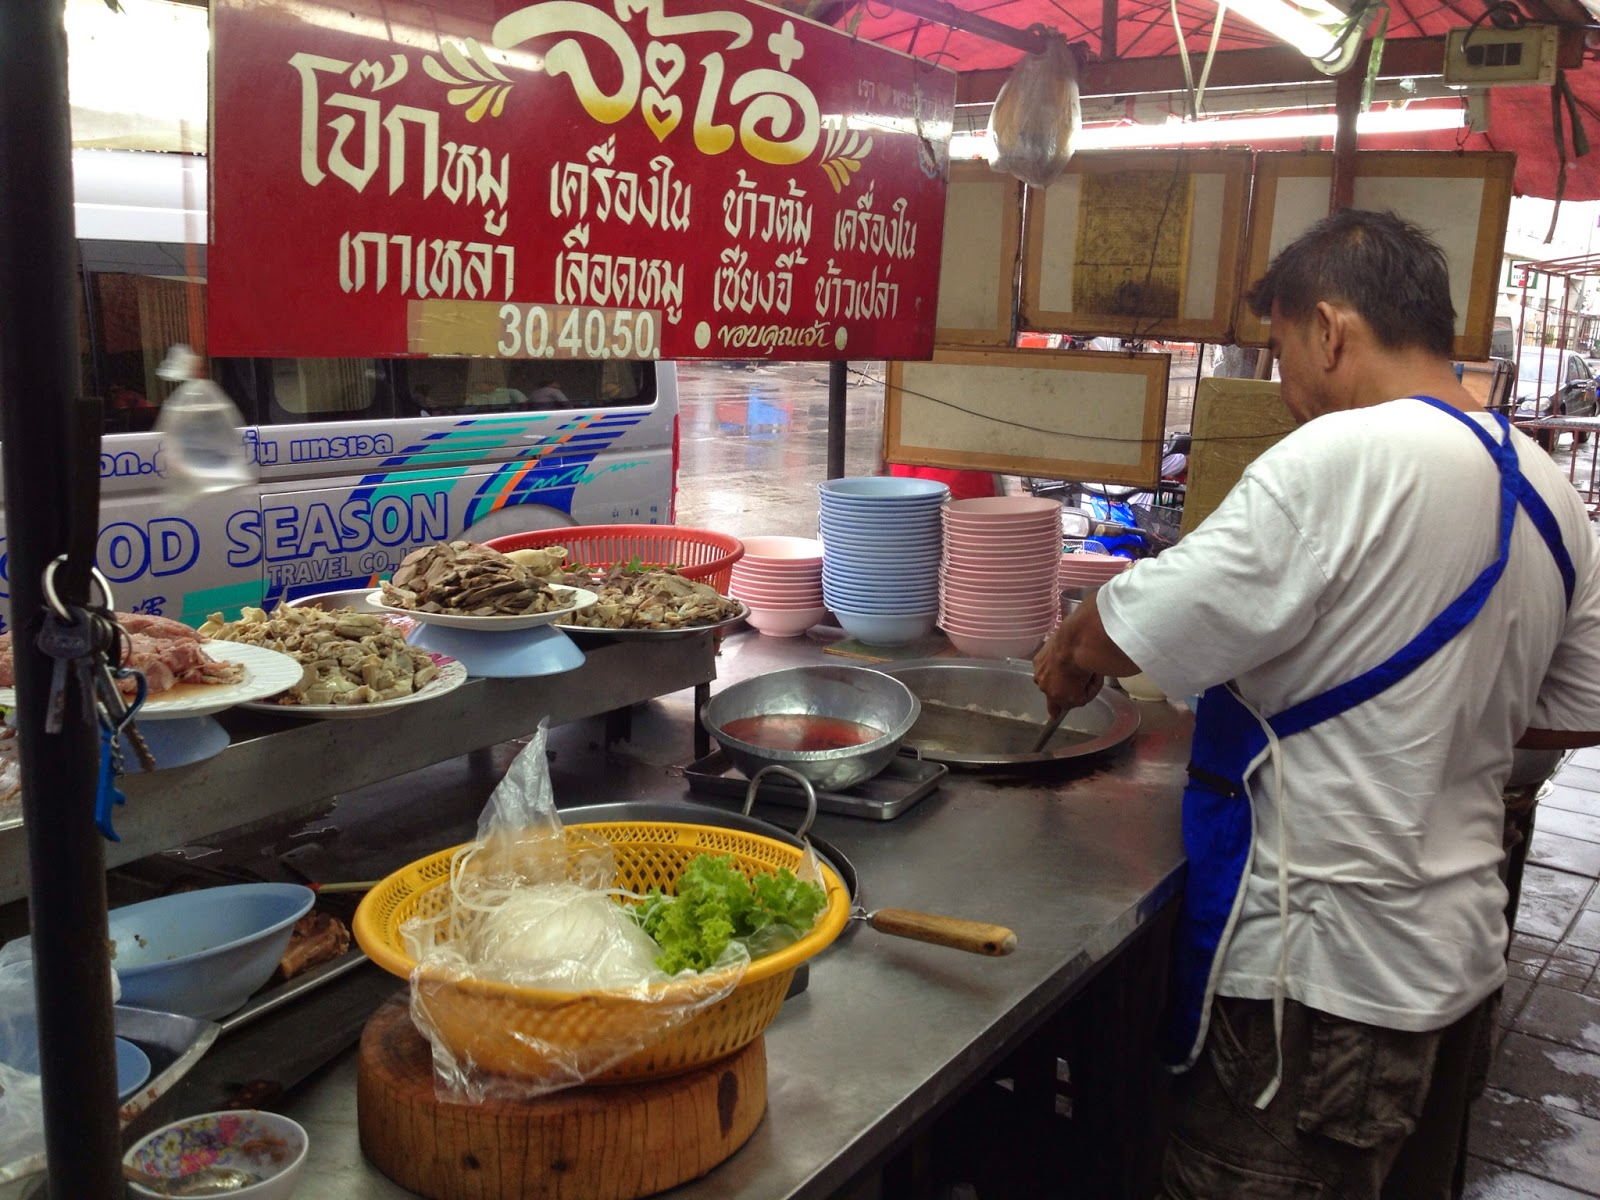 Chiang Mai - We were up early so we got ourselves a bowl of breakfast noodles